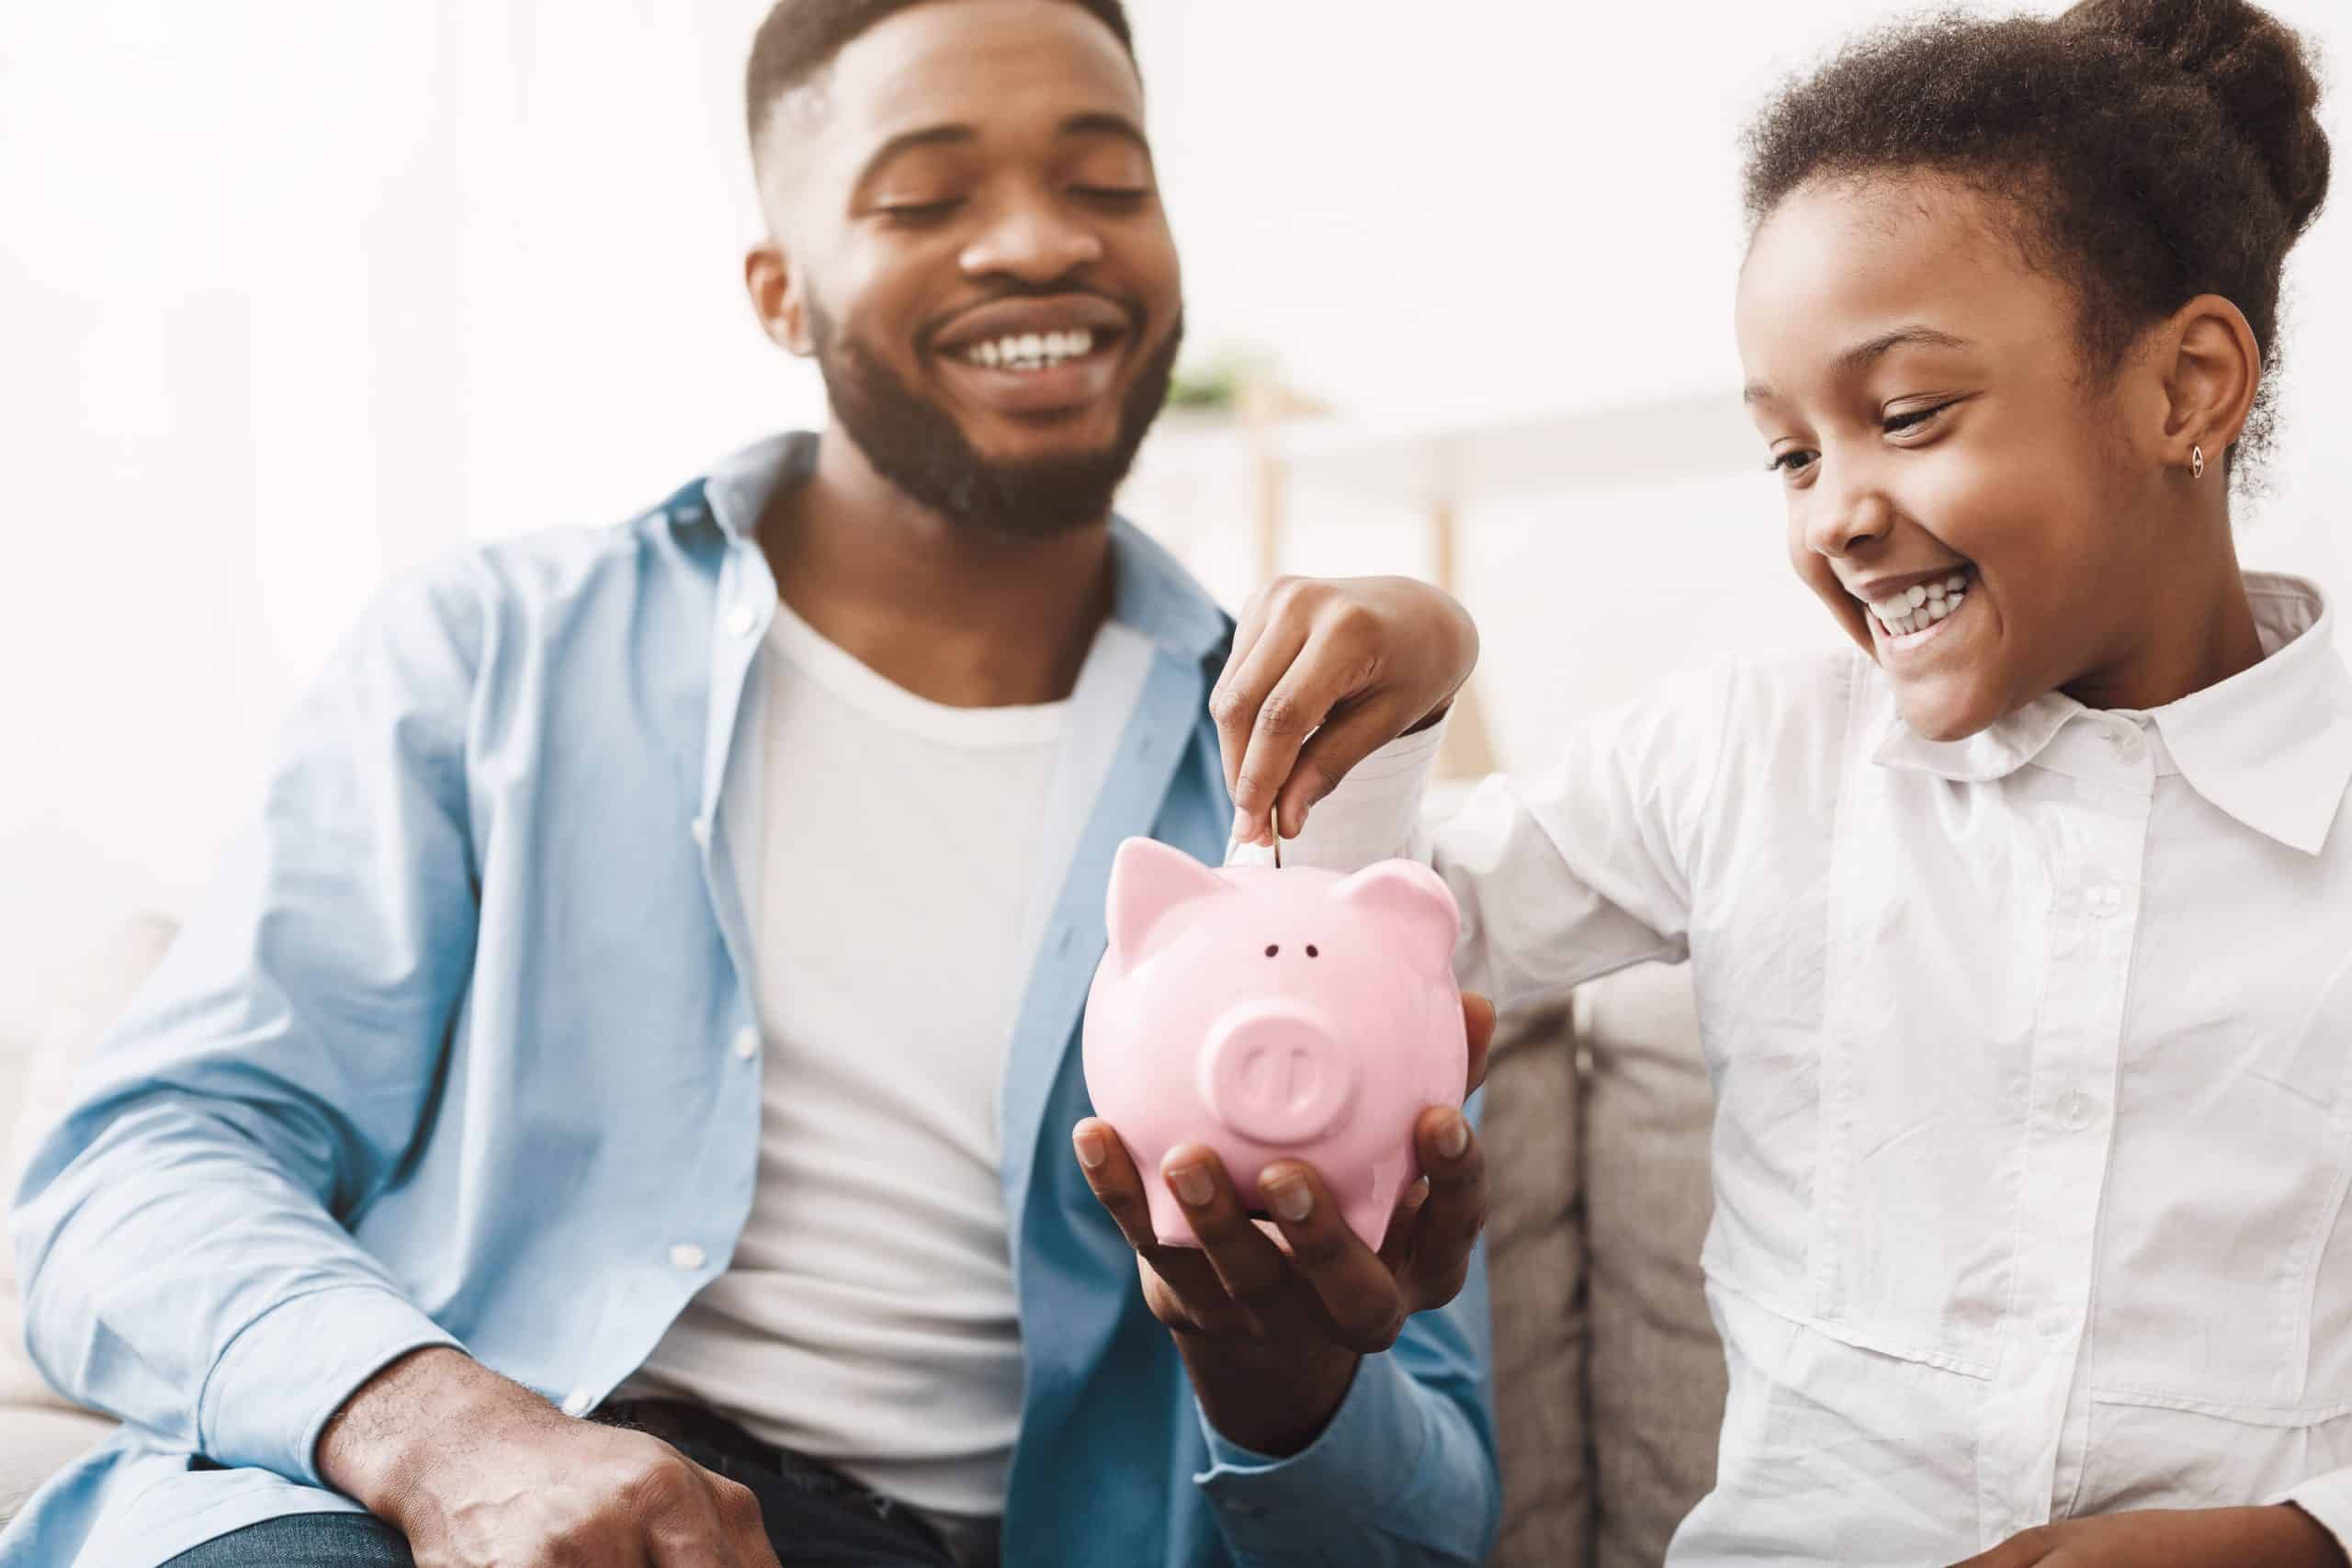 Teach kids about money - Dad holds piggy bank while daughter puts in a coin